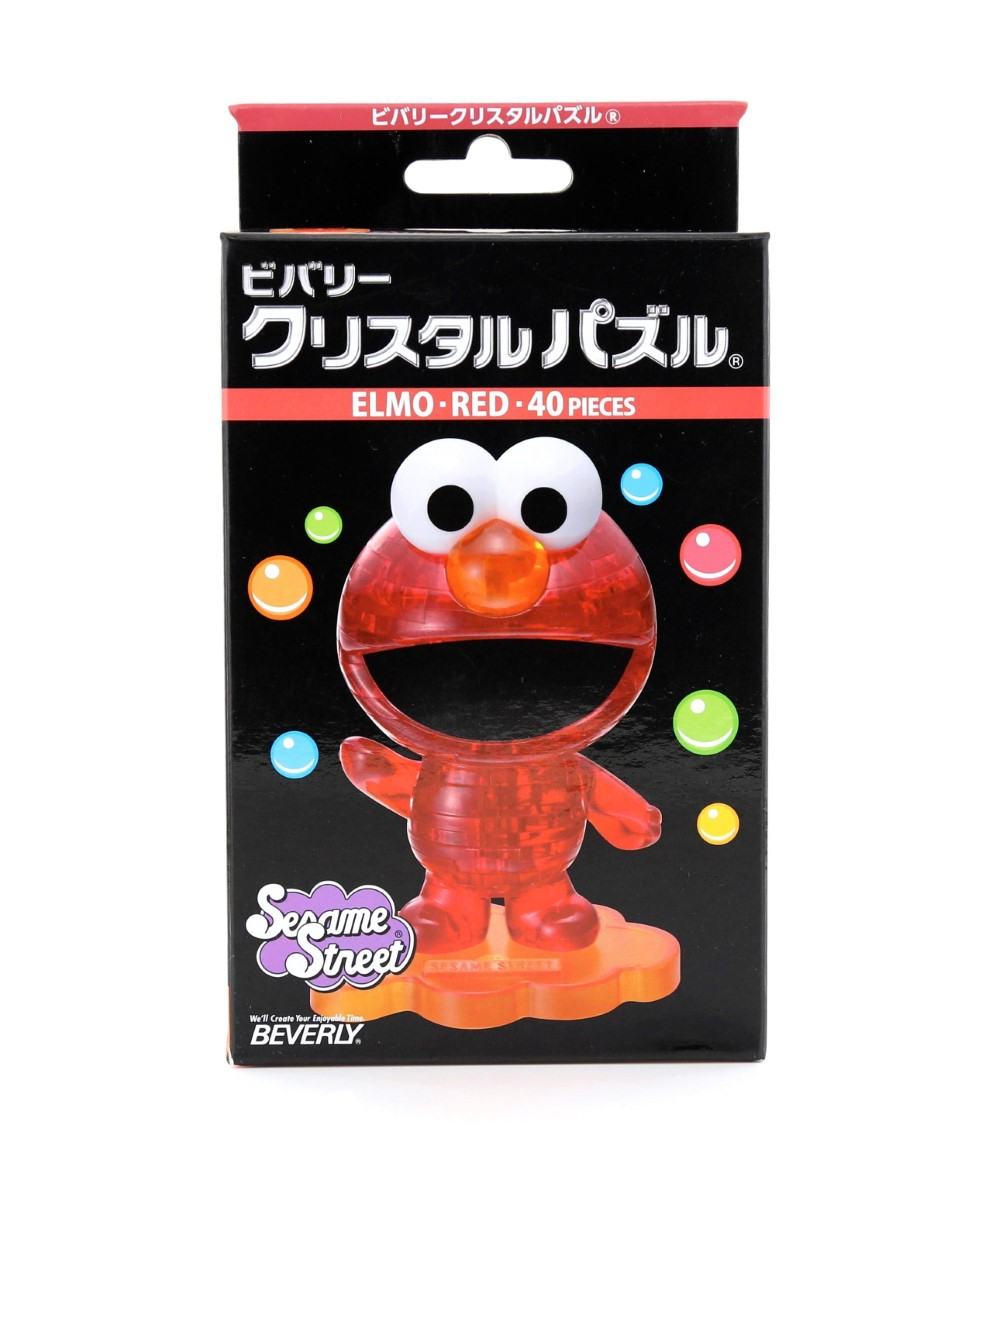 Beverly Crystal Puzzle Elmo Red